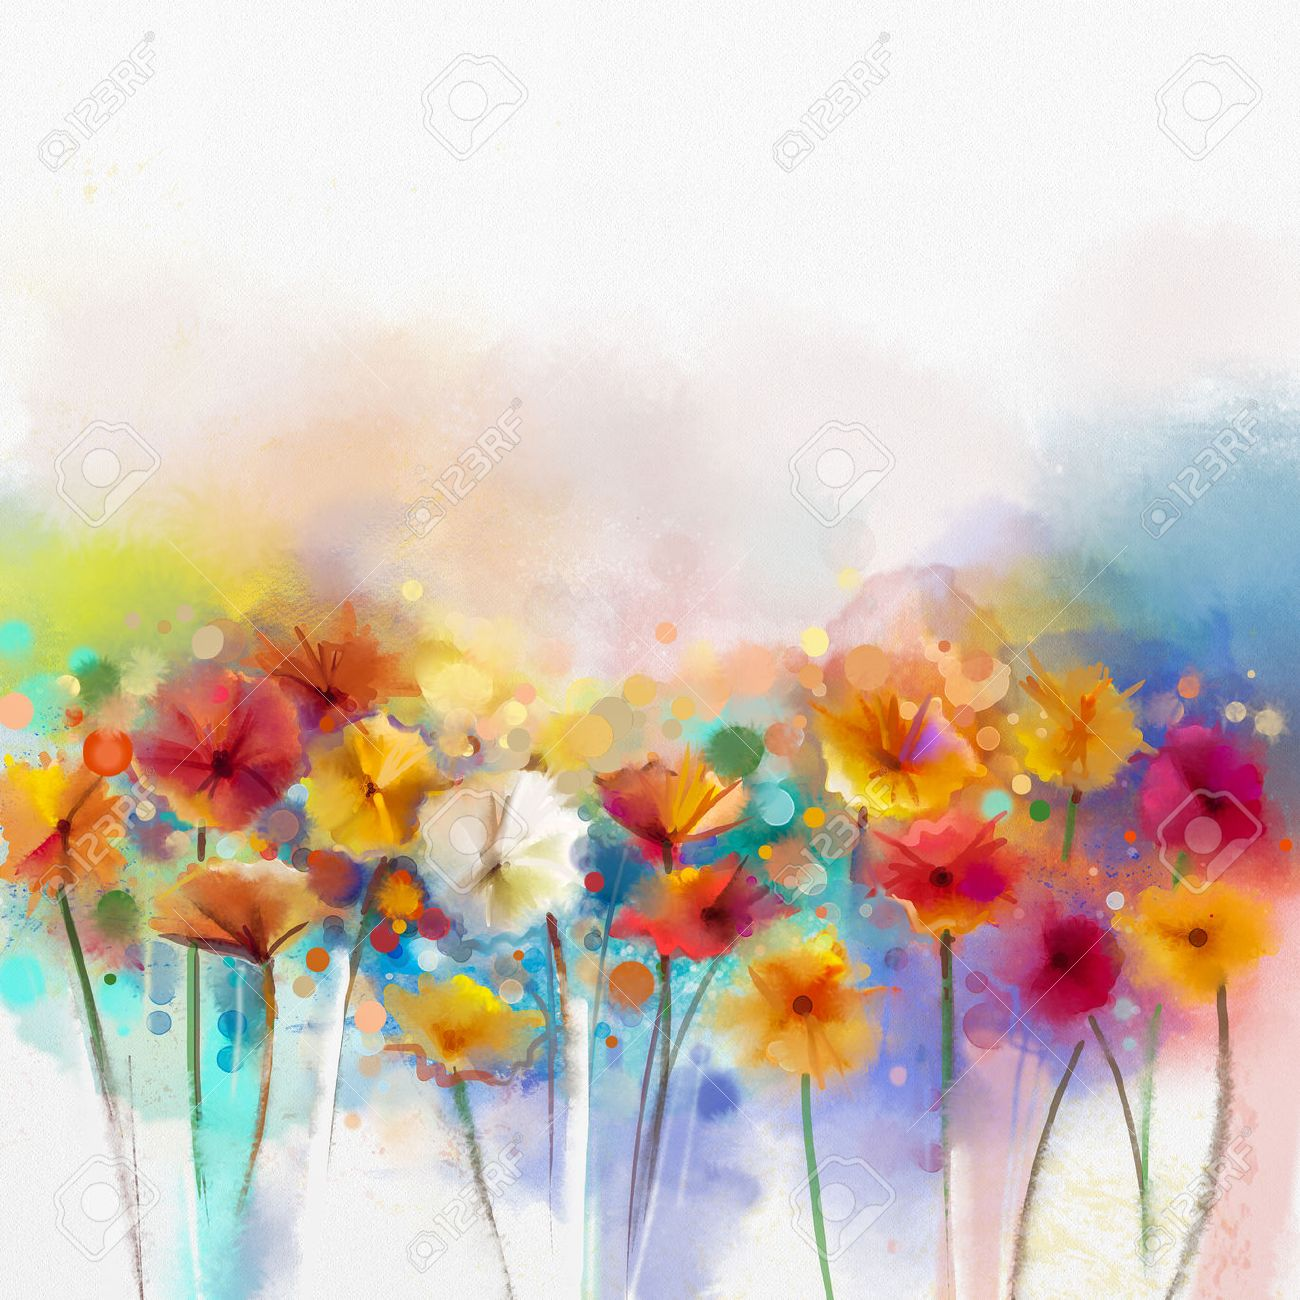 Painting Color abstract floral watercolor painting. hand paint white, yellow